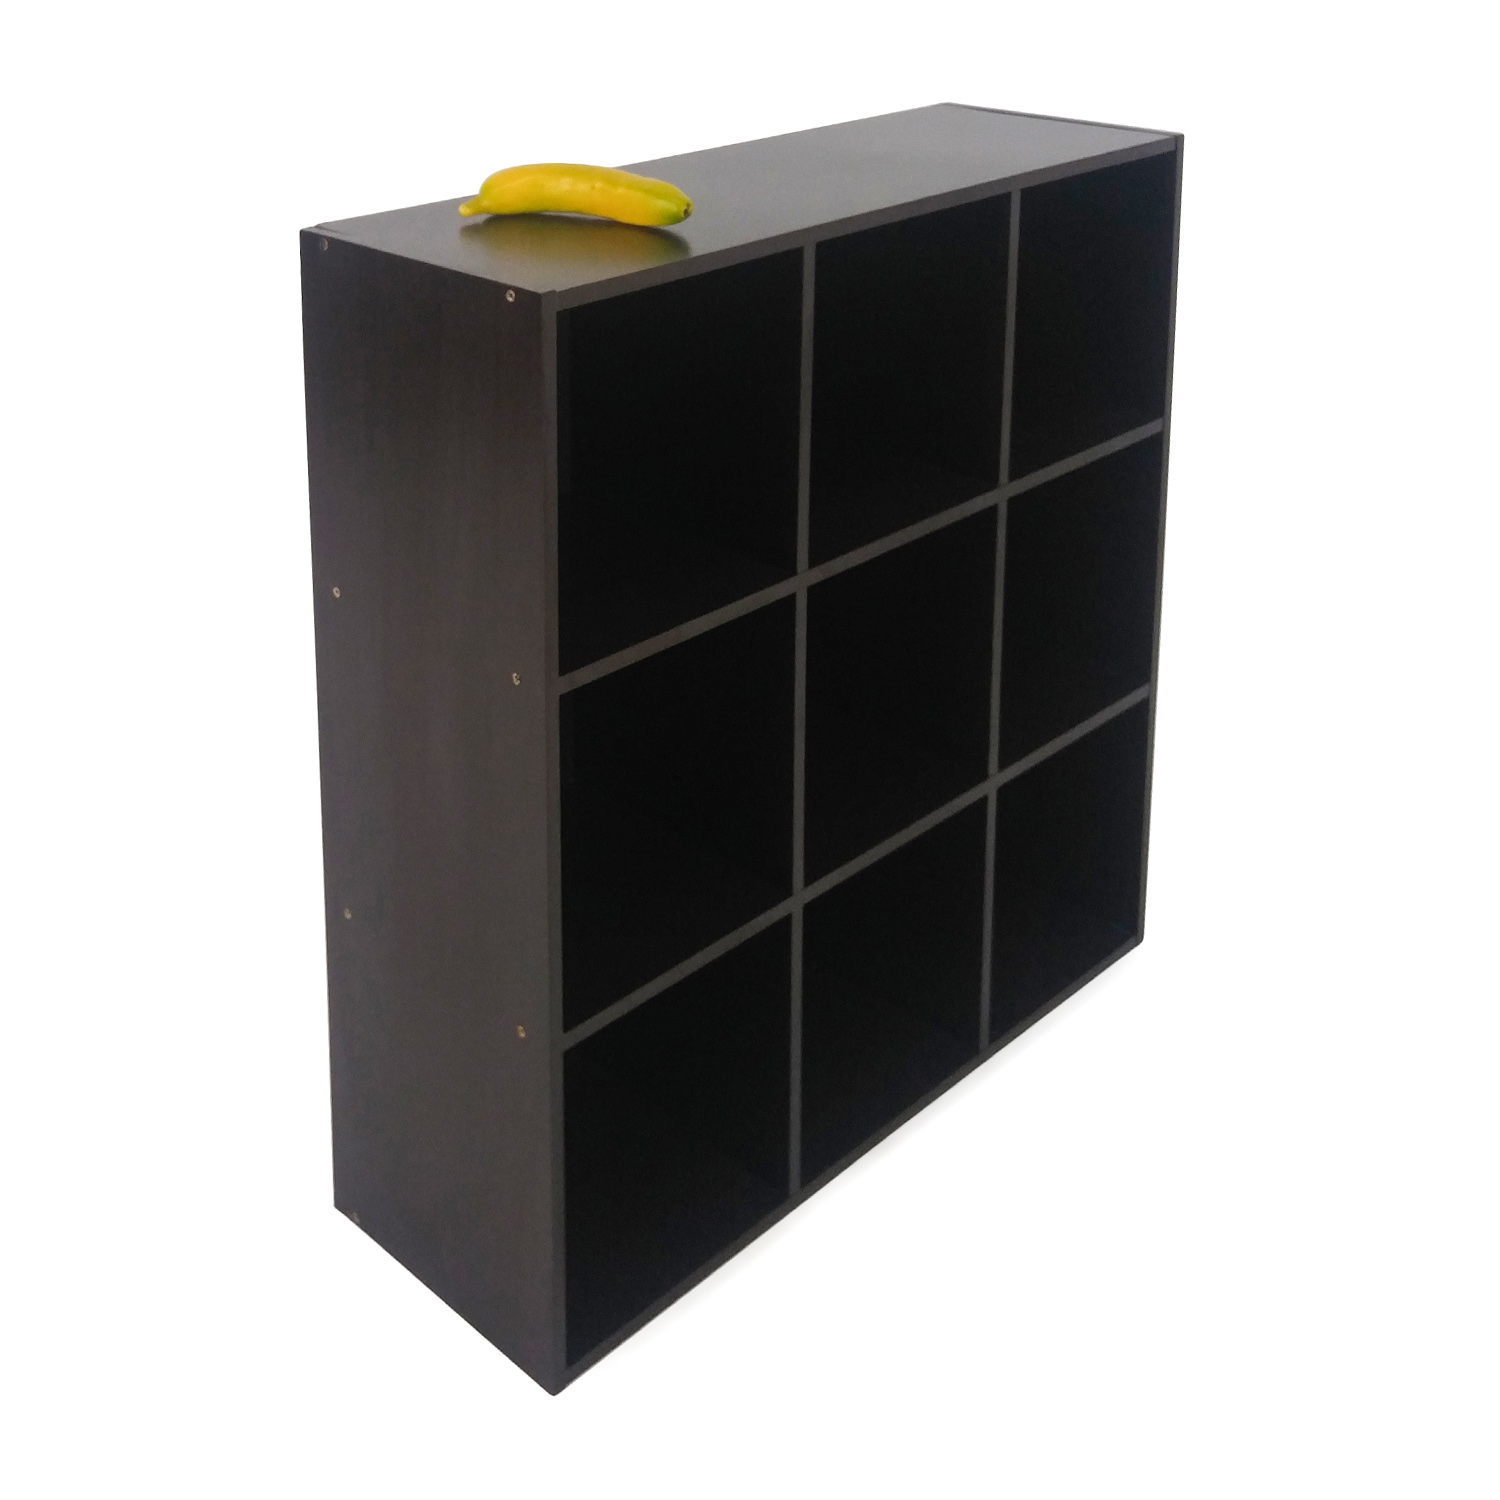 80 OFF Container Store Container Store Cube Organizer and